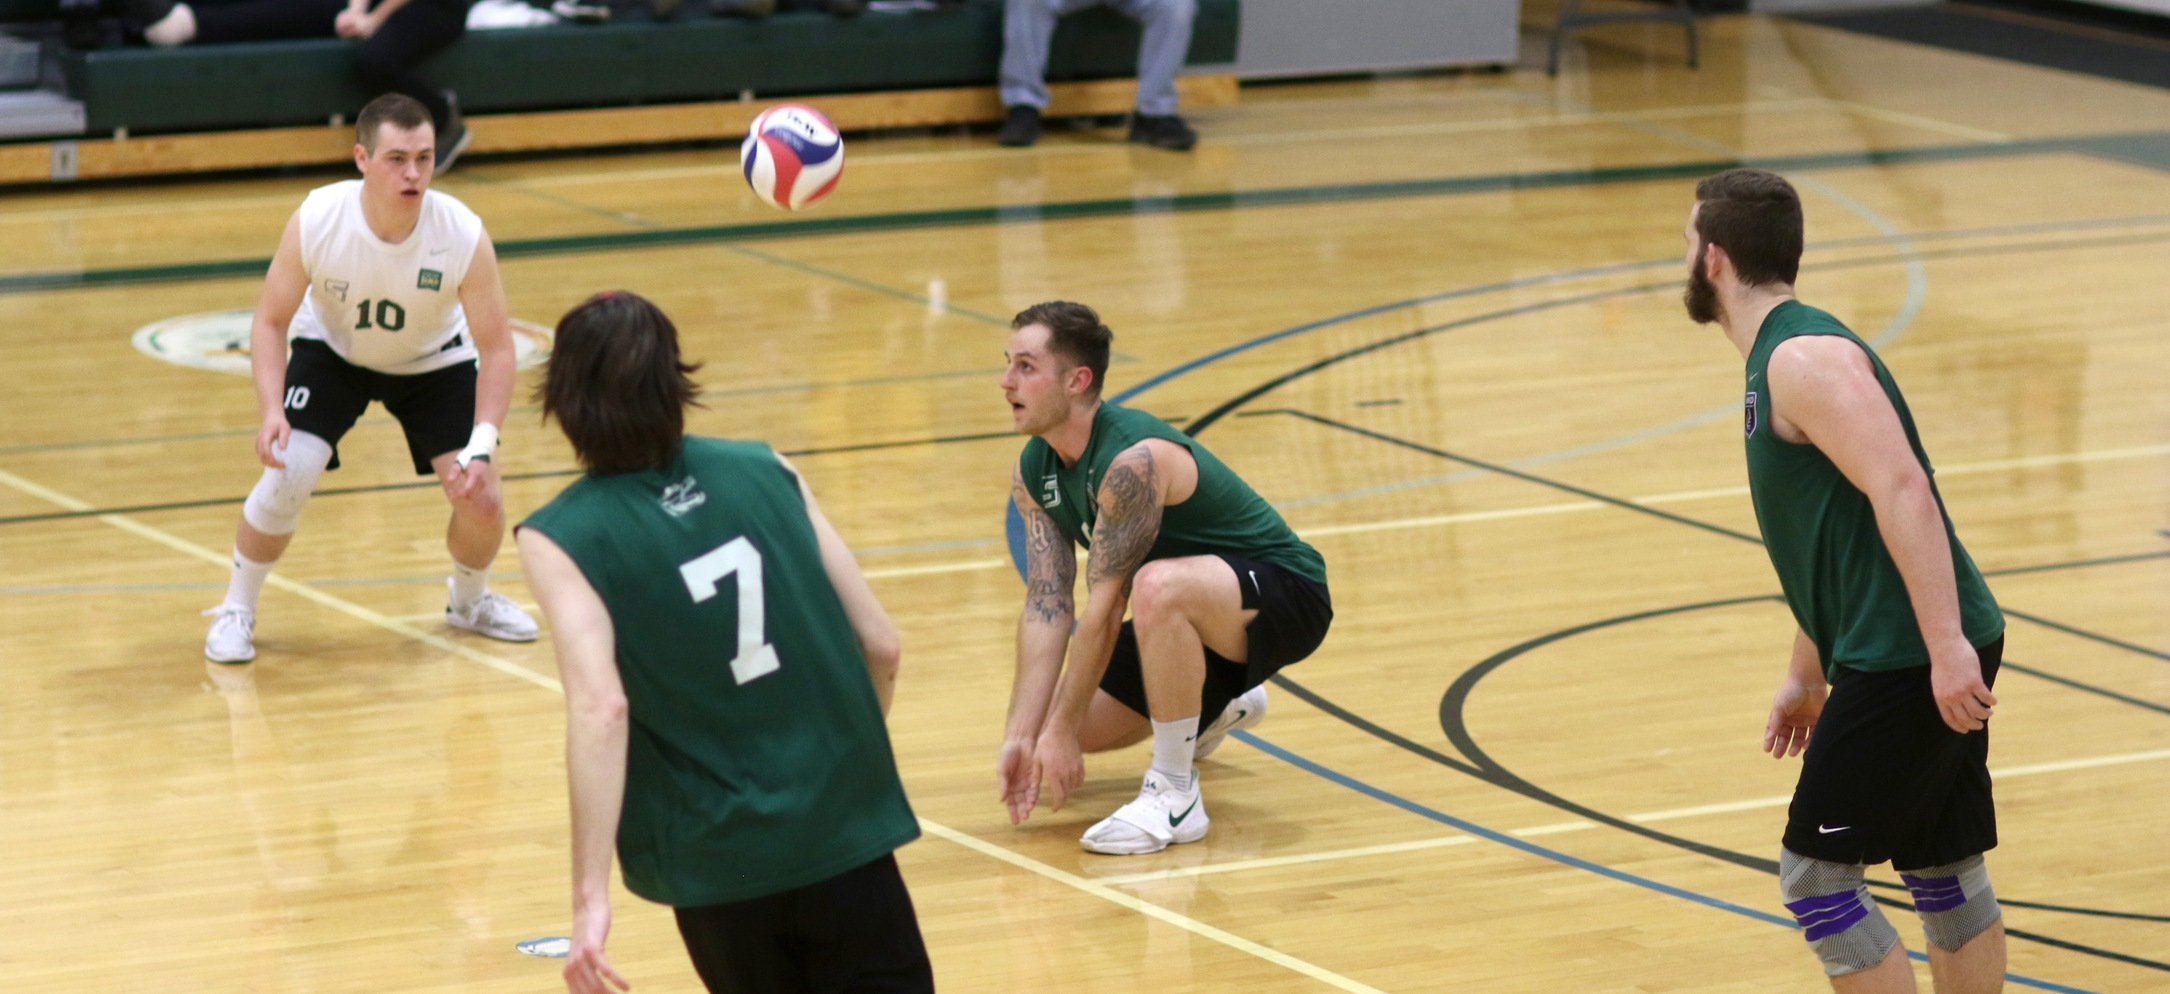 Gators tripped up by Elms, 3-0